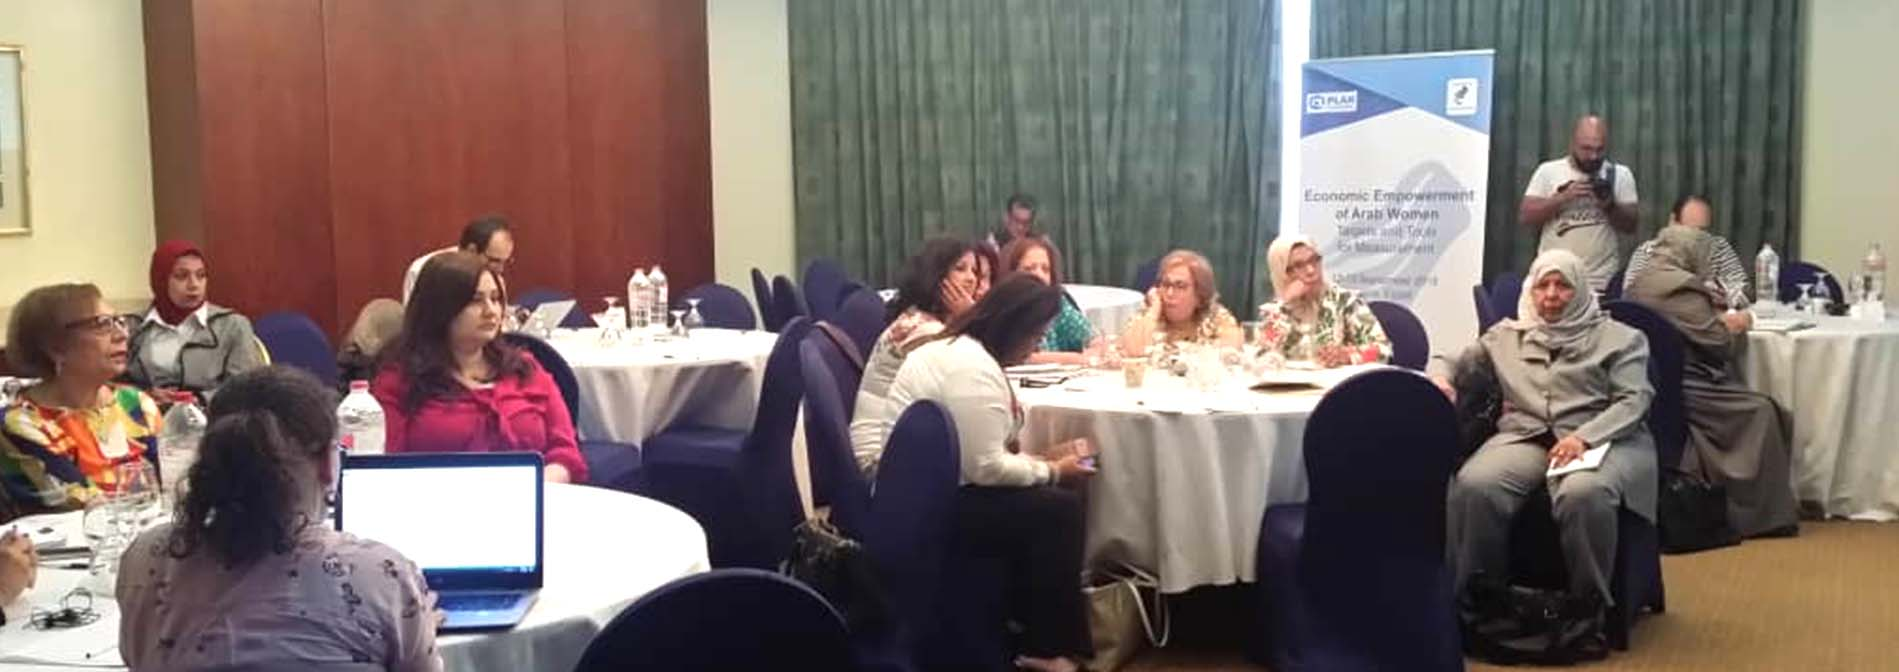 Yemen Women Union participates in the Conference of Arab Women's Economic Empowerment in Cairo.